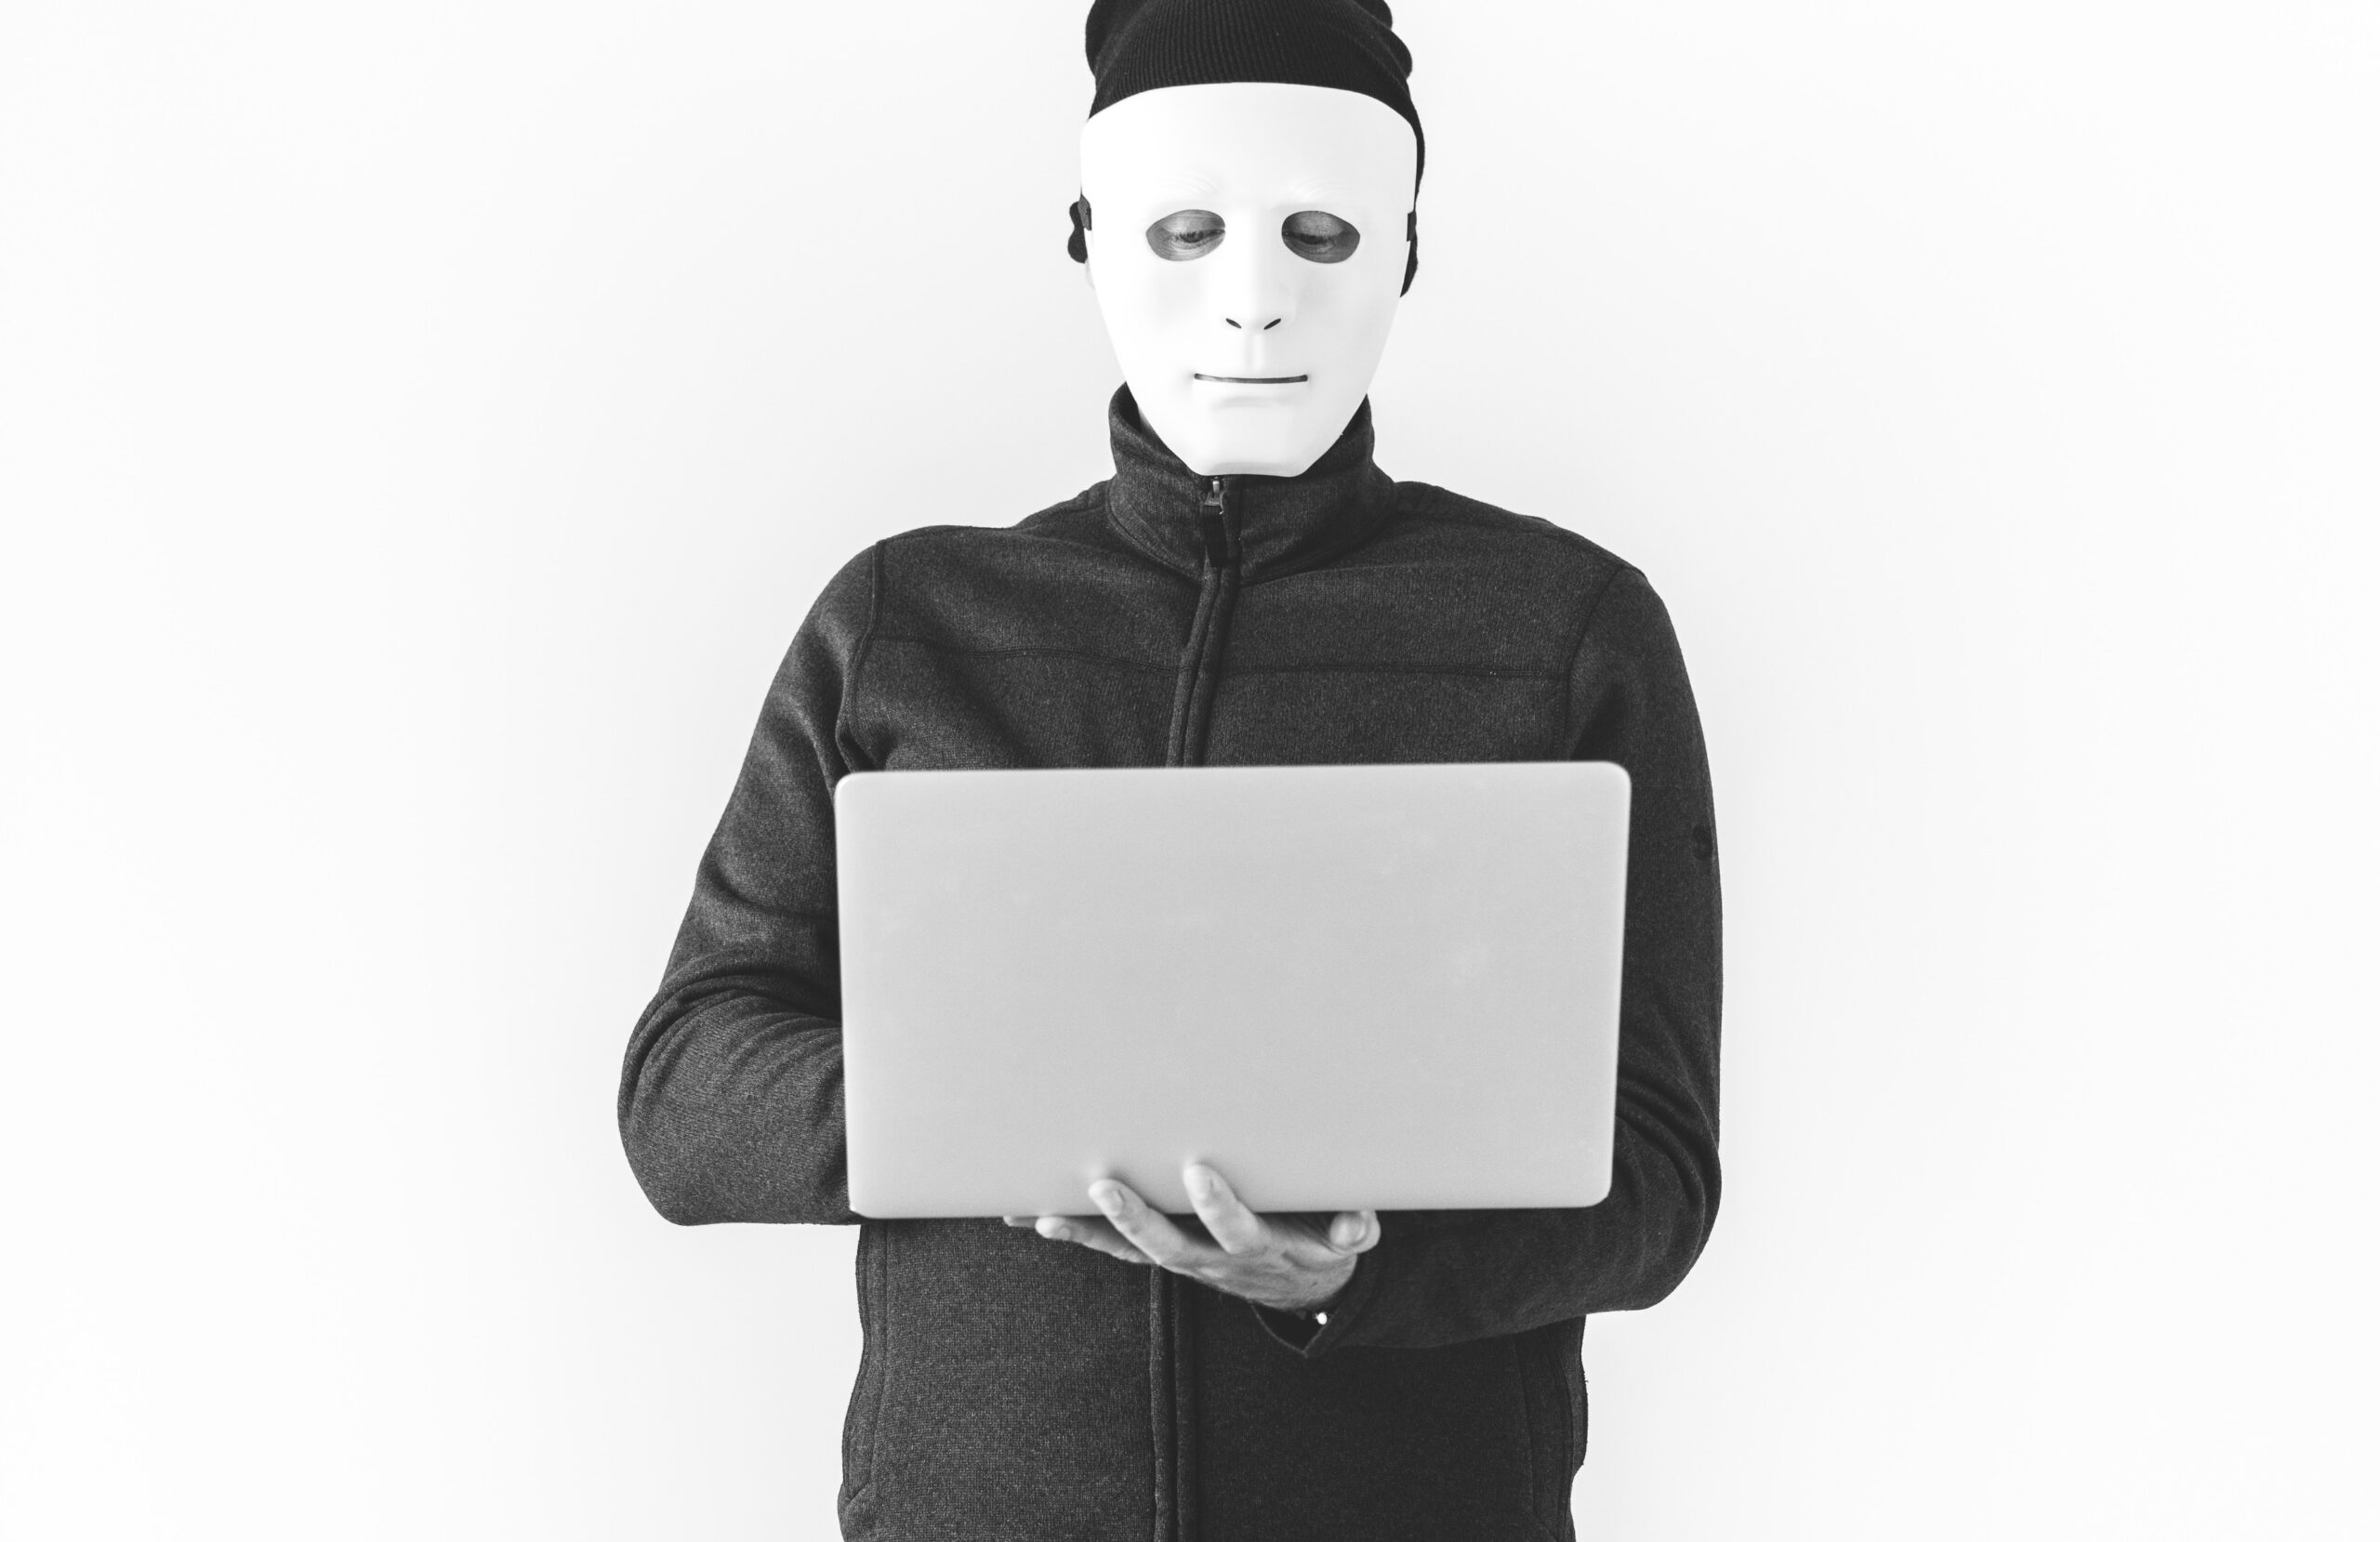 Masked Hacker with laptop